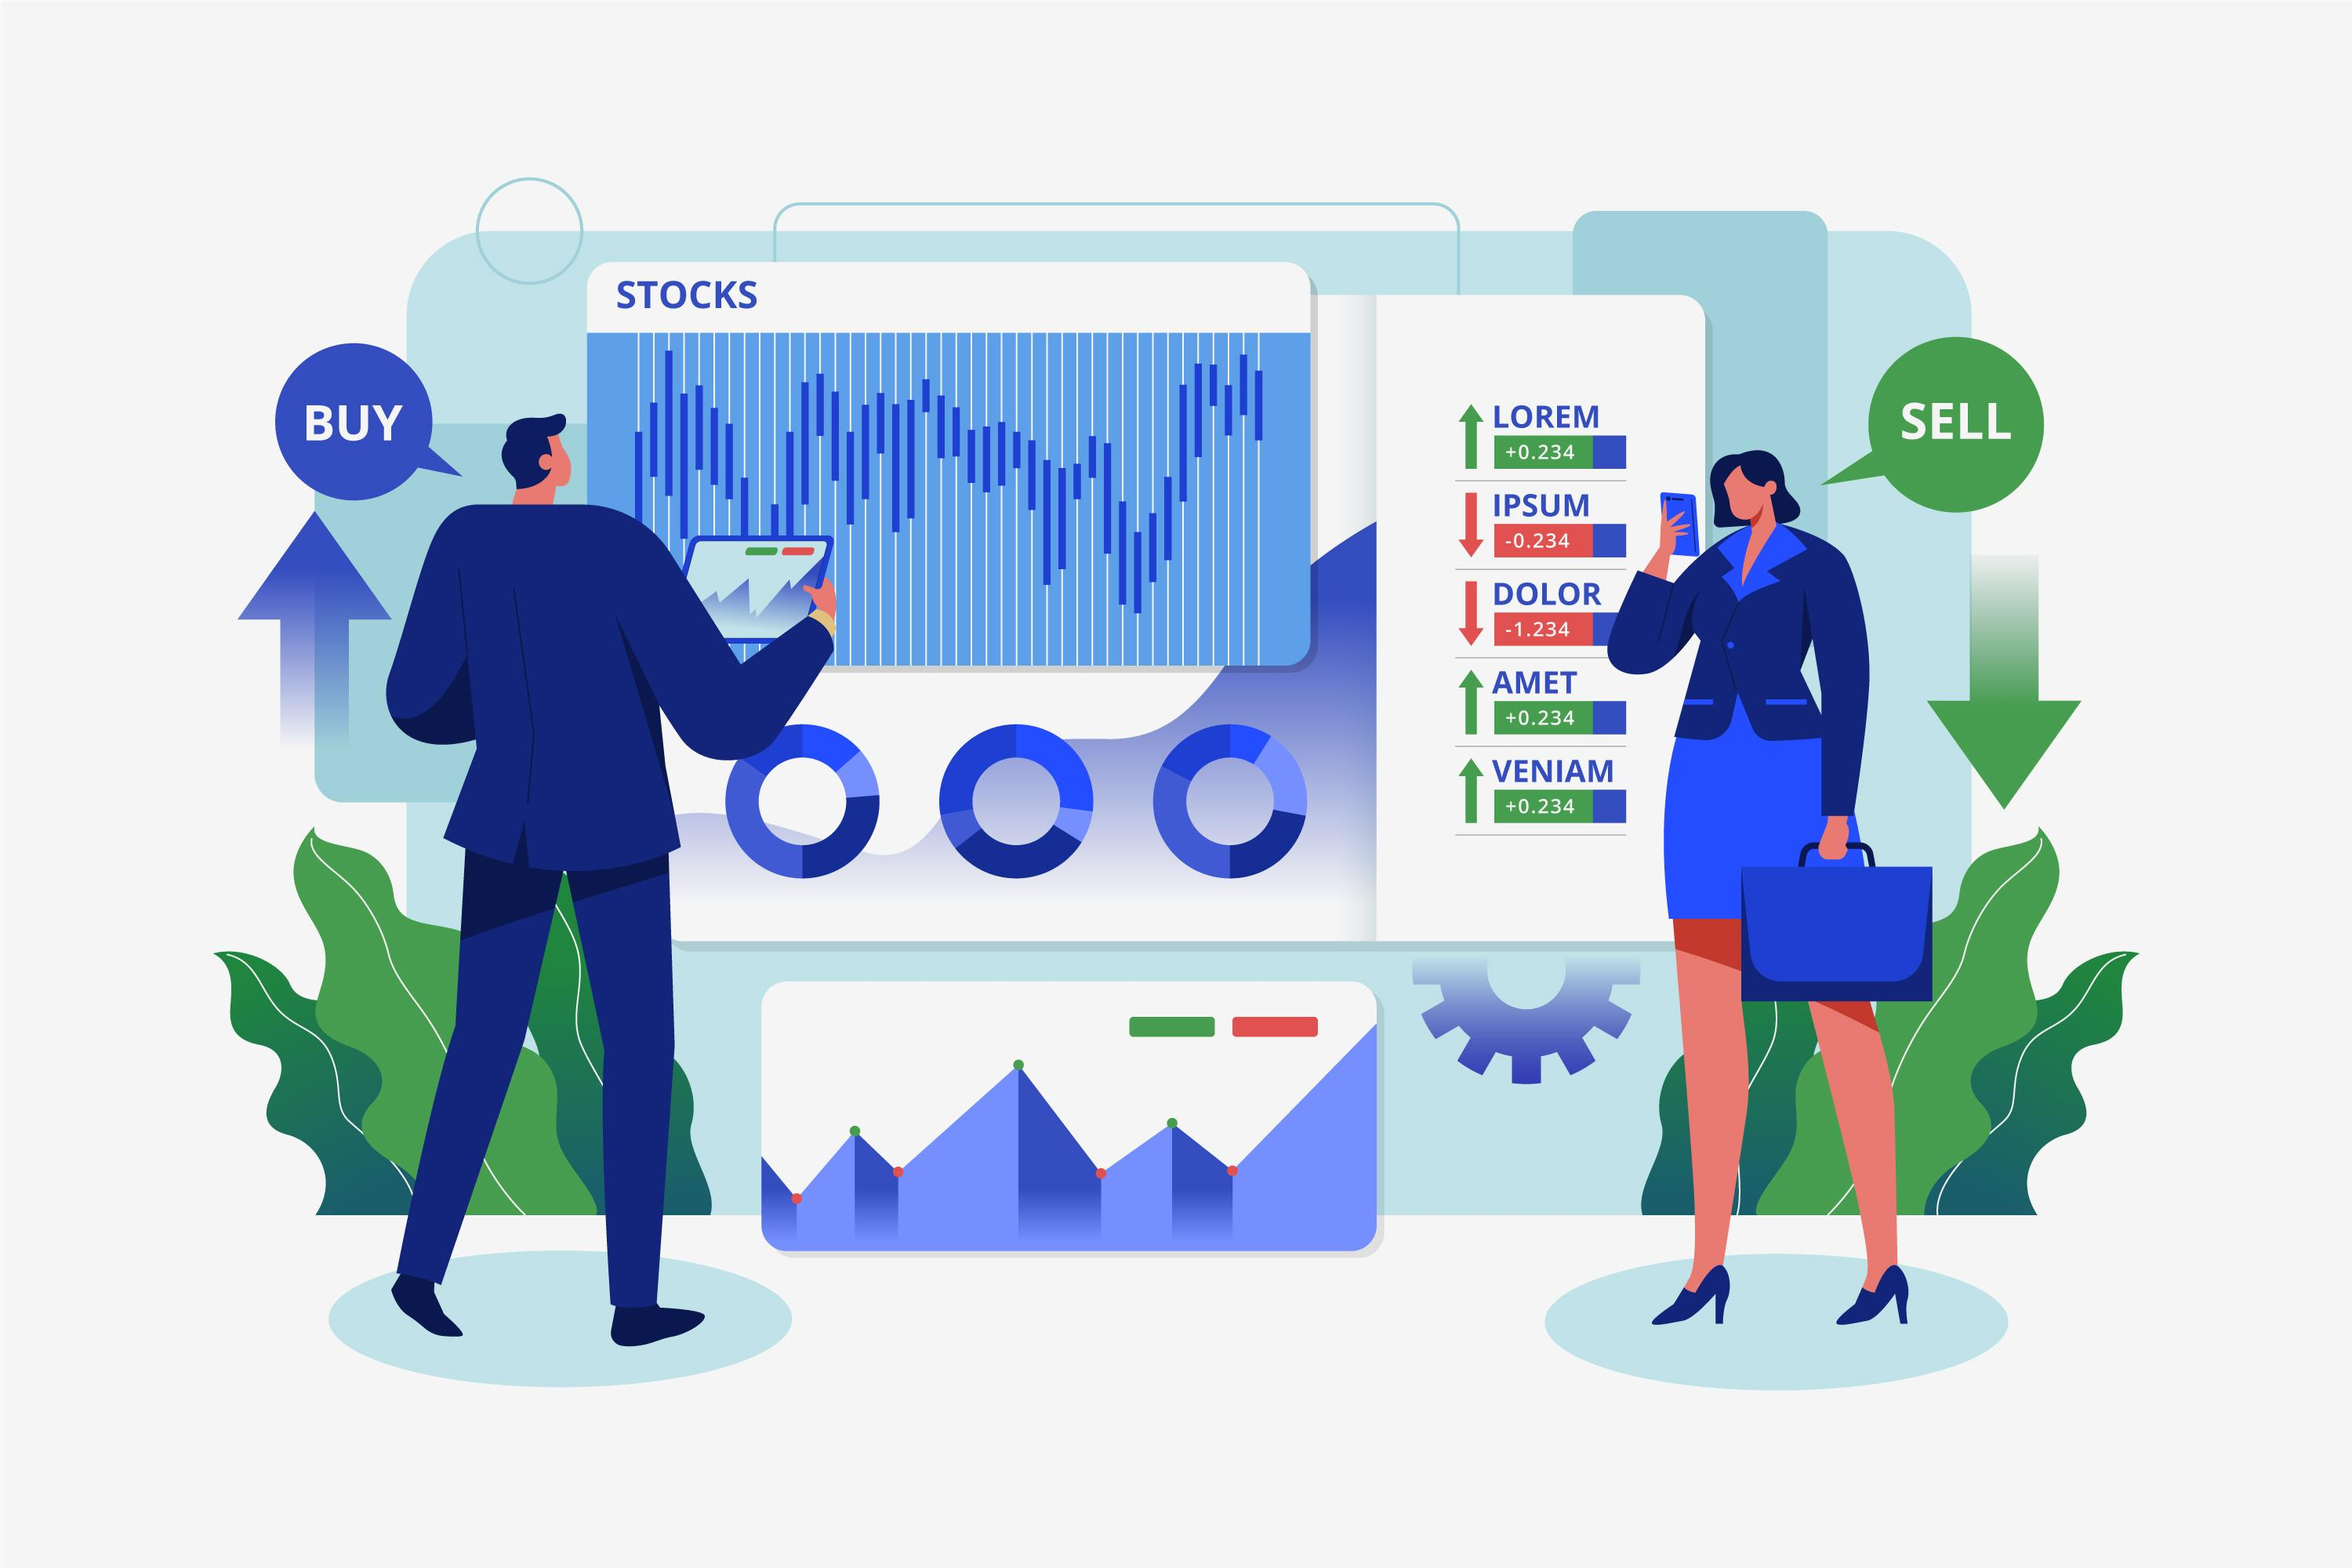 Stock Trading: The Exness Stock Offering